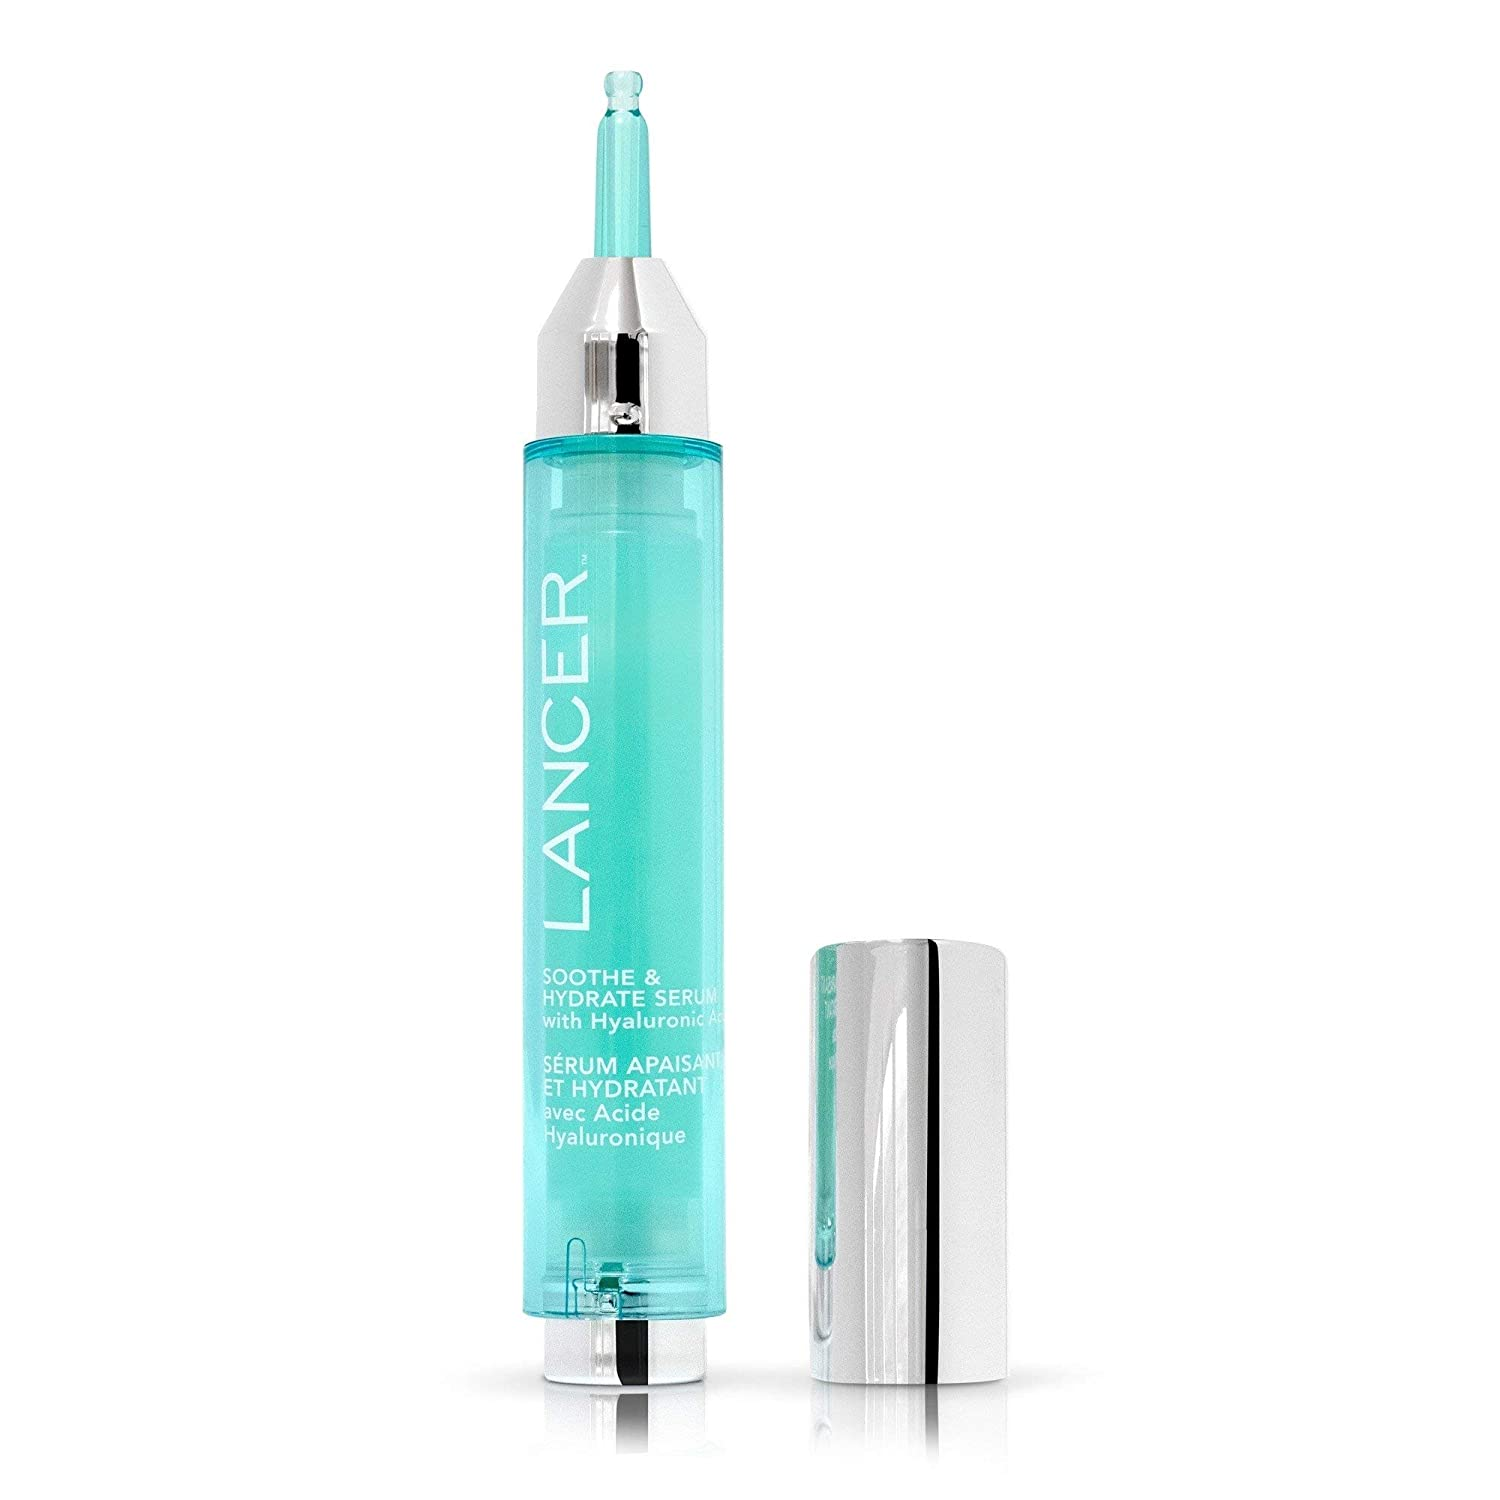 Soothe and Hydrate Serum with Hyaluronic Acid, Dr. Lancer Dermatology Skincare, Gentle Soothing Serum, Paraben, Sulfate, Phthalate, and Synthetic Fragrance Free, For Daily Use